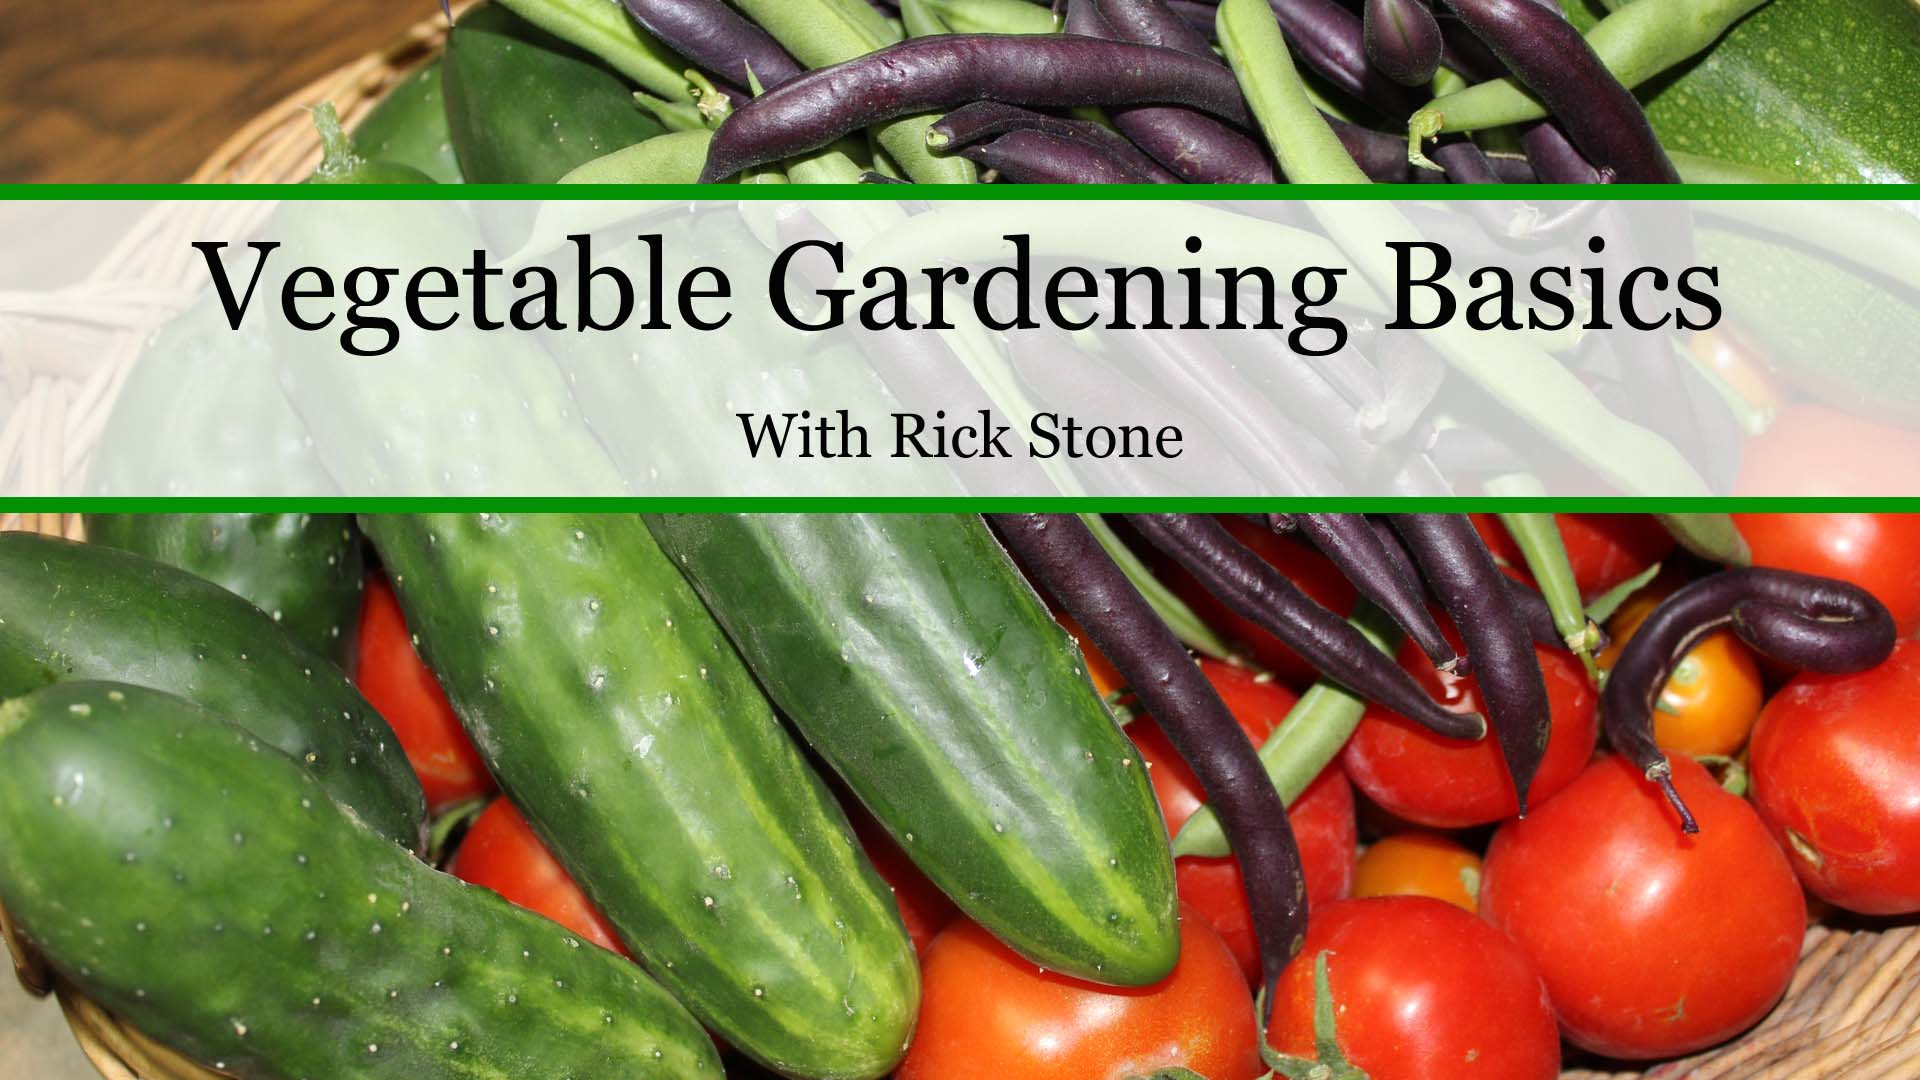 Vegetable gardening basics stoney acres for Gardening 101 vegetables